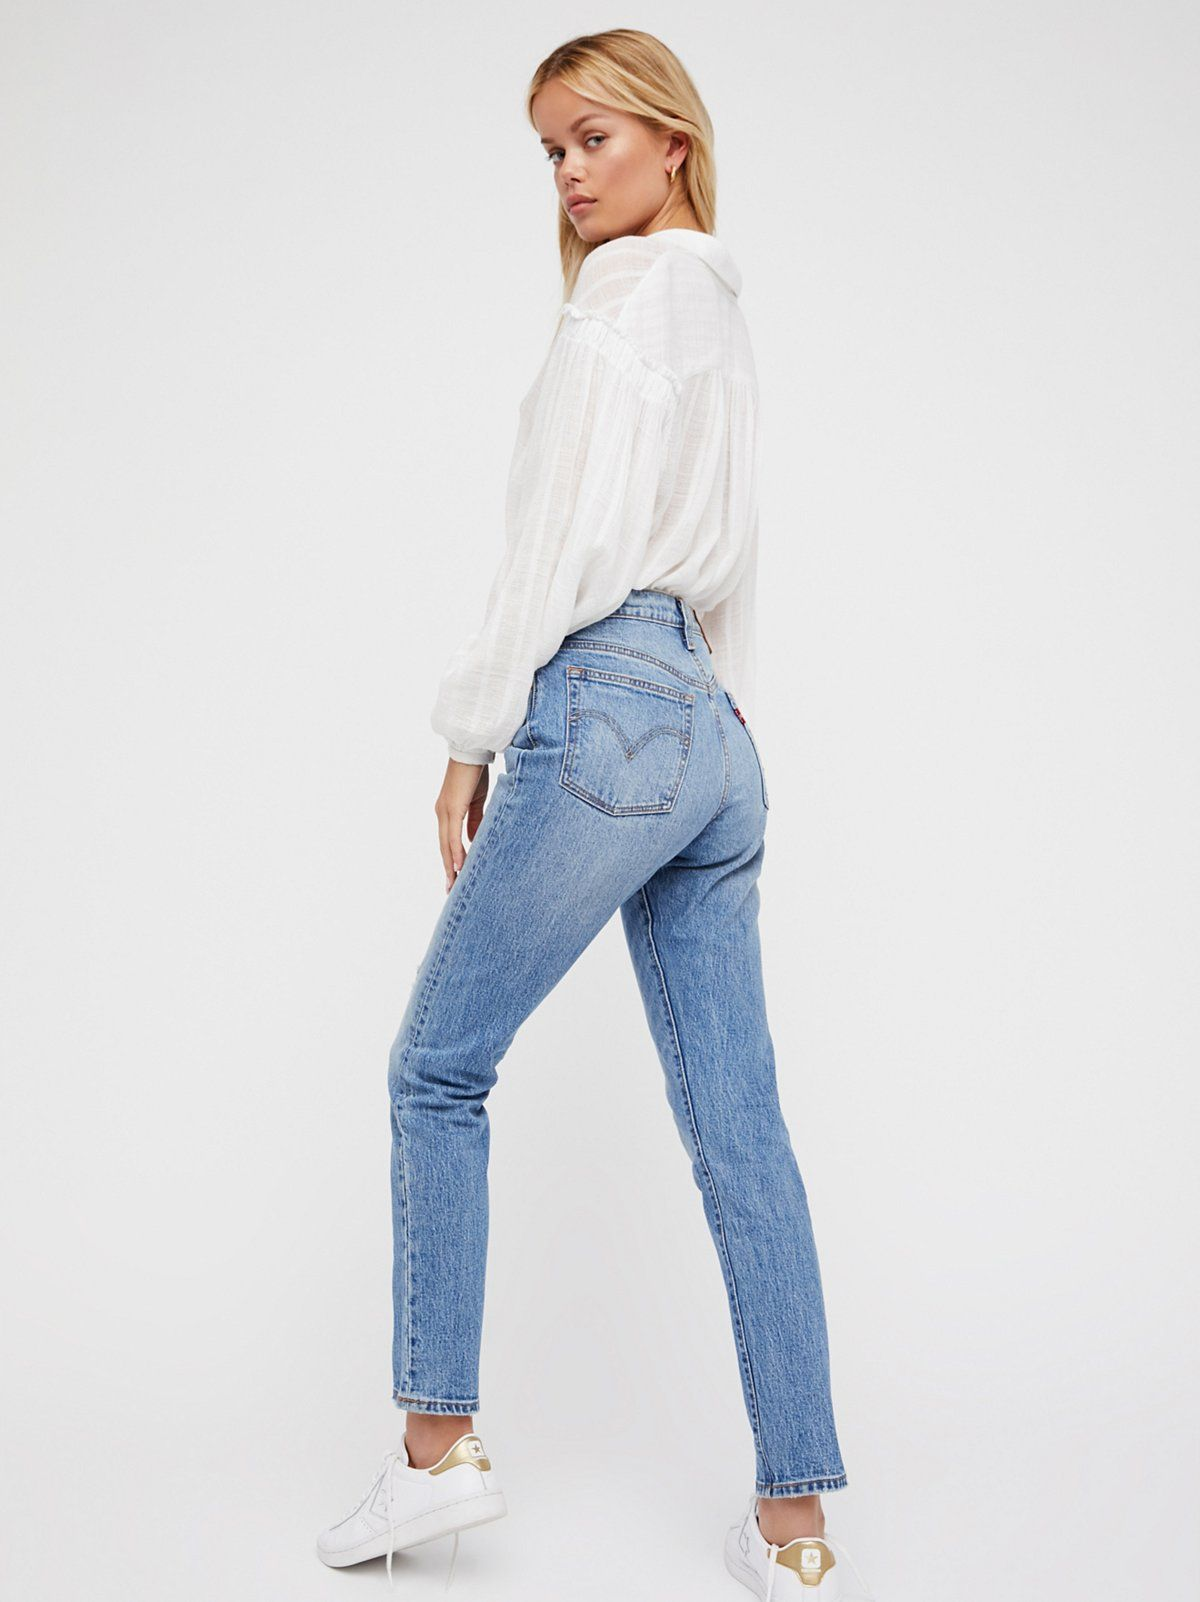 Levi S 501 Skinny Jeans Jeans Outfit Women Casual Vest Outfits Levi Jeans Outfit